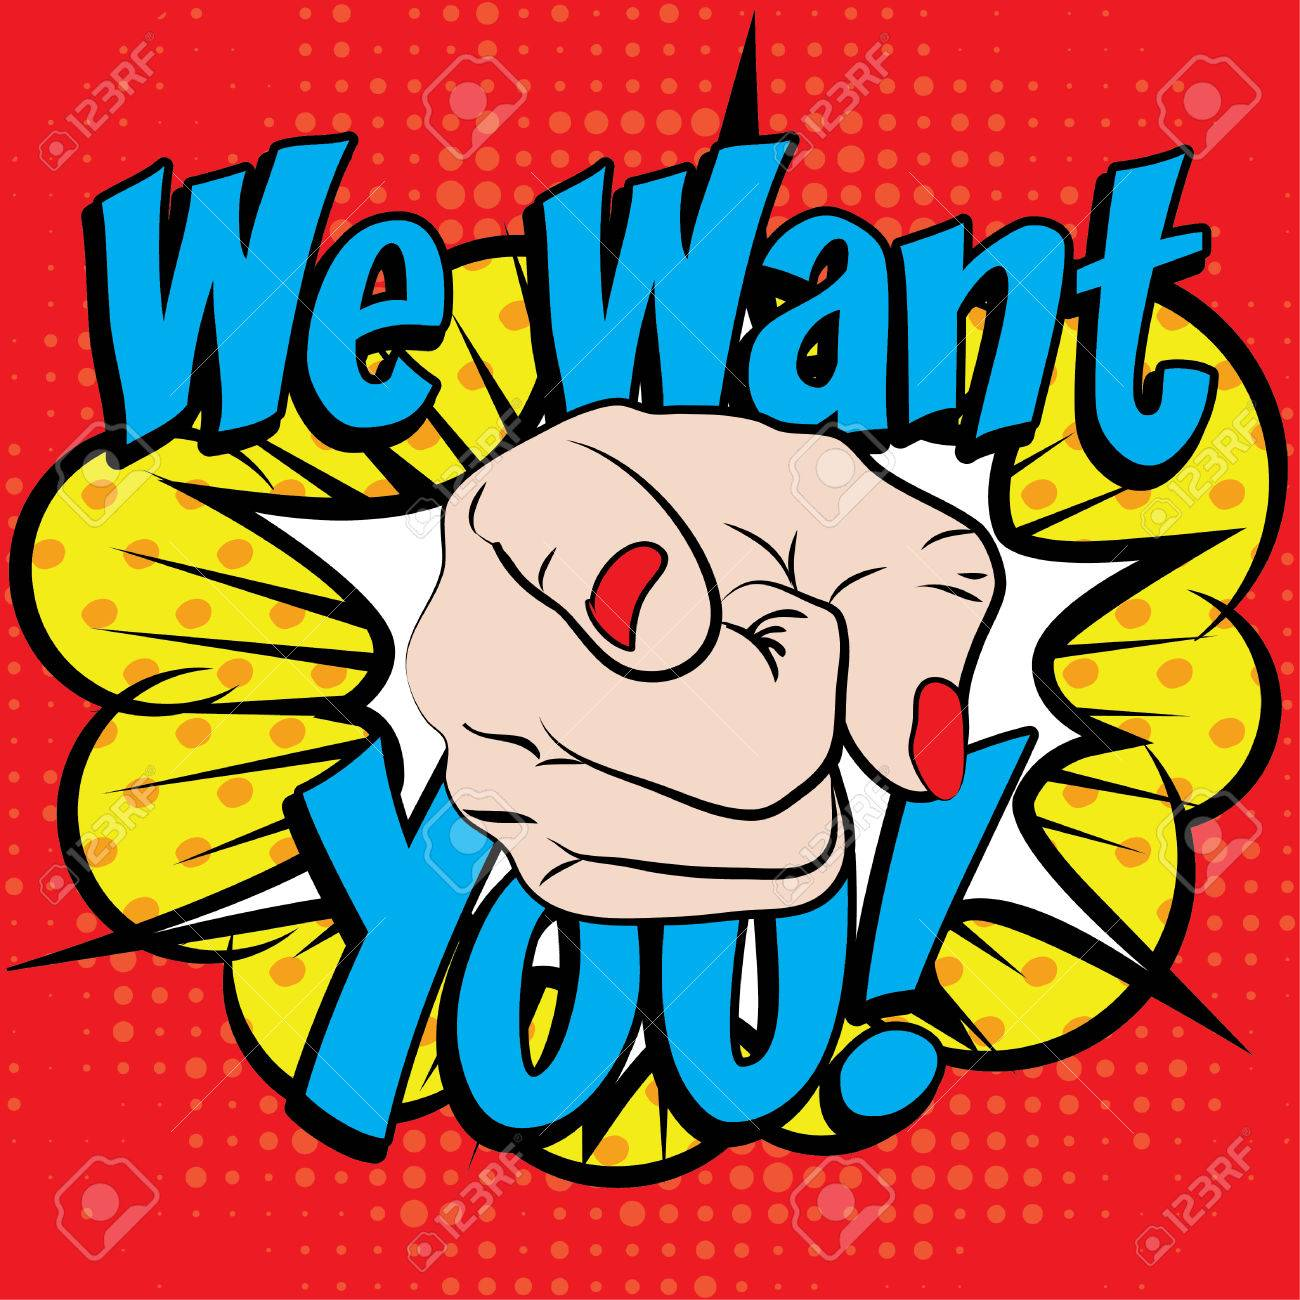 Pop art we want you typography - 53503627